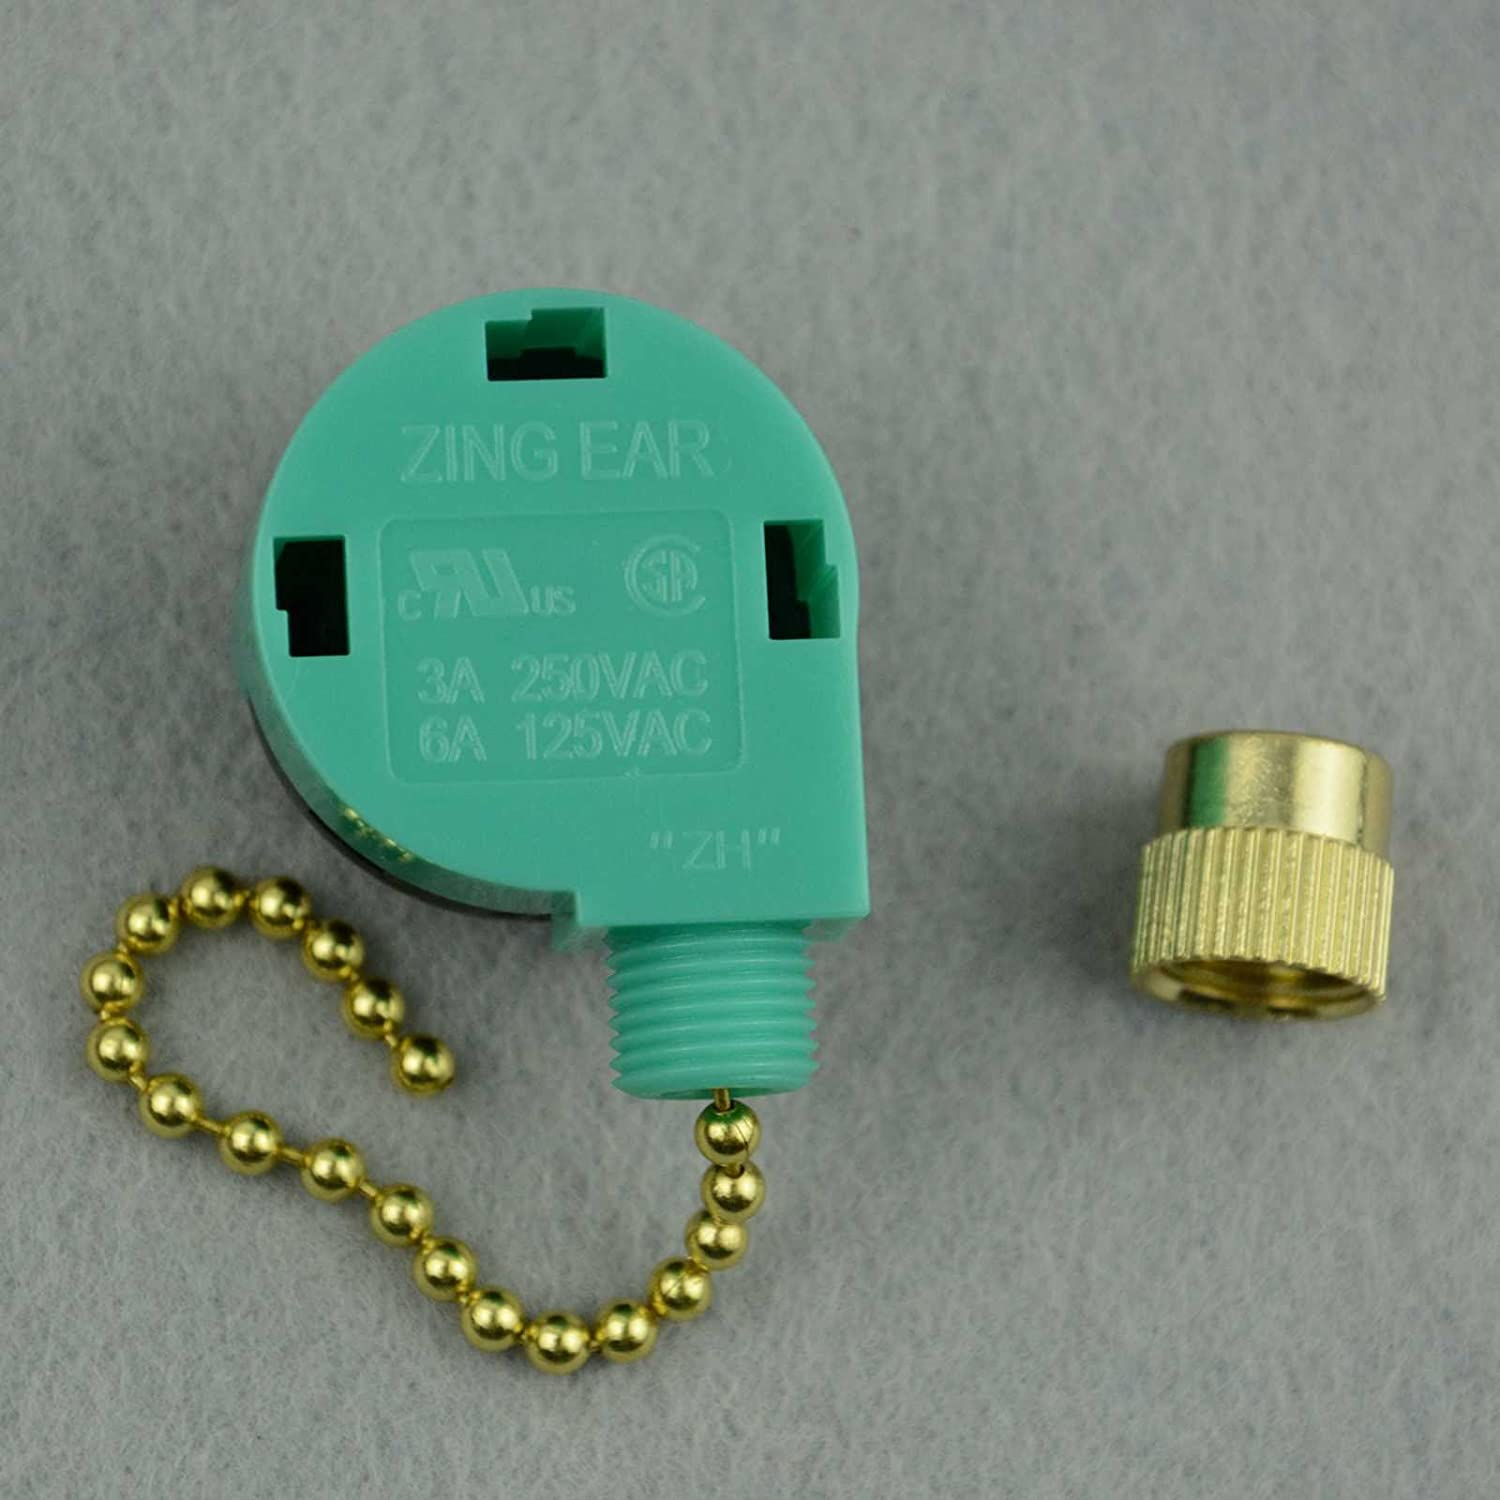 Zing Ear Ze 268s6 208s6 3 Speed Antique Brass Replacement 3speed Ceiling Fan Switch7702100 The Home Depot Kitchen